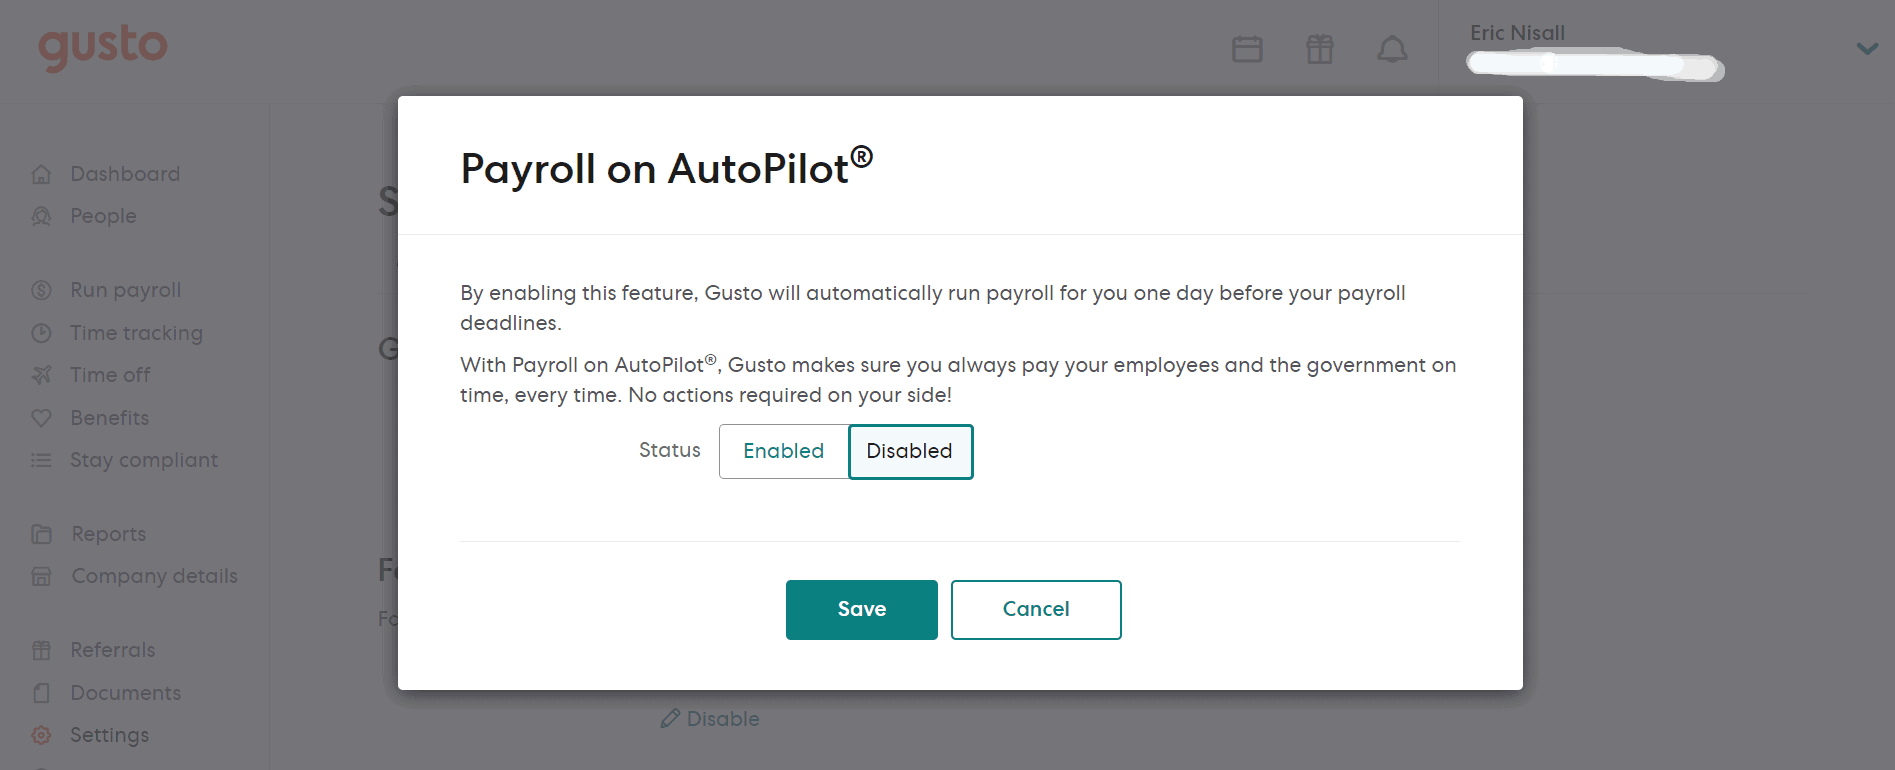 Automated Payroll feature of Gusto screenchot